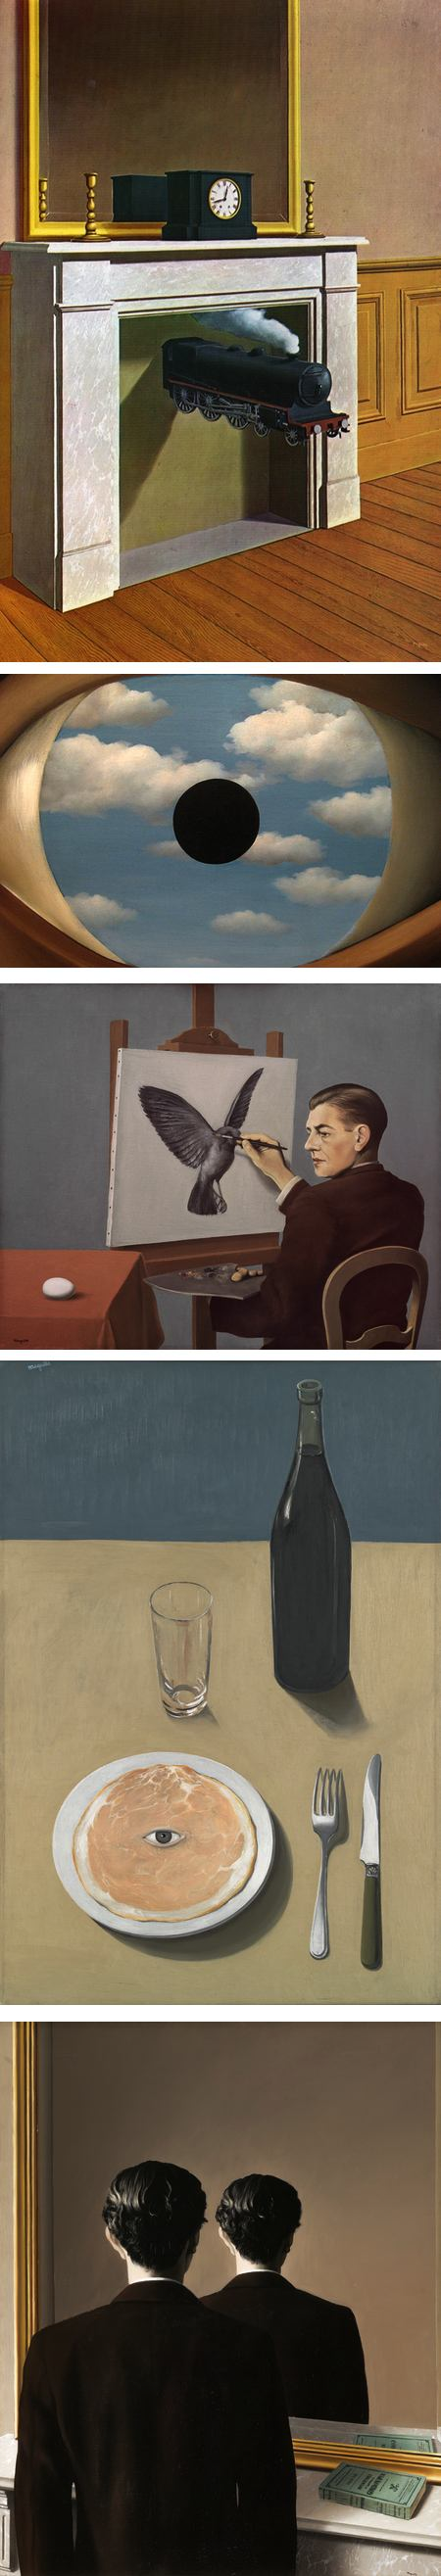 Rene Magritte: The Mystery of the Ordinary, 1926-1938